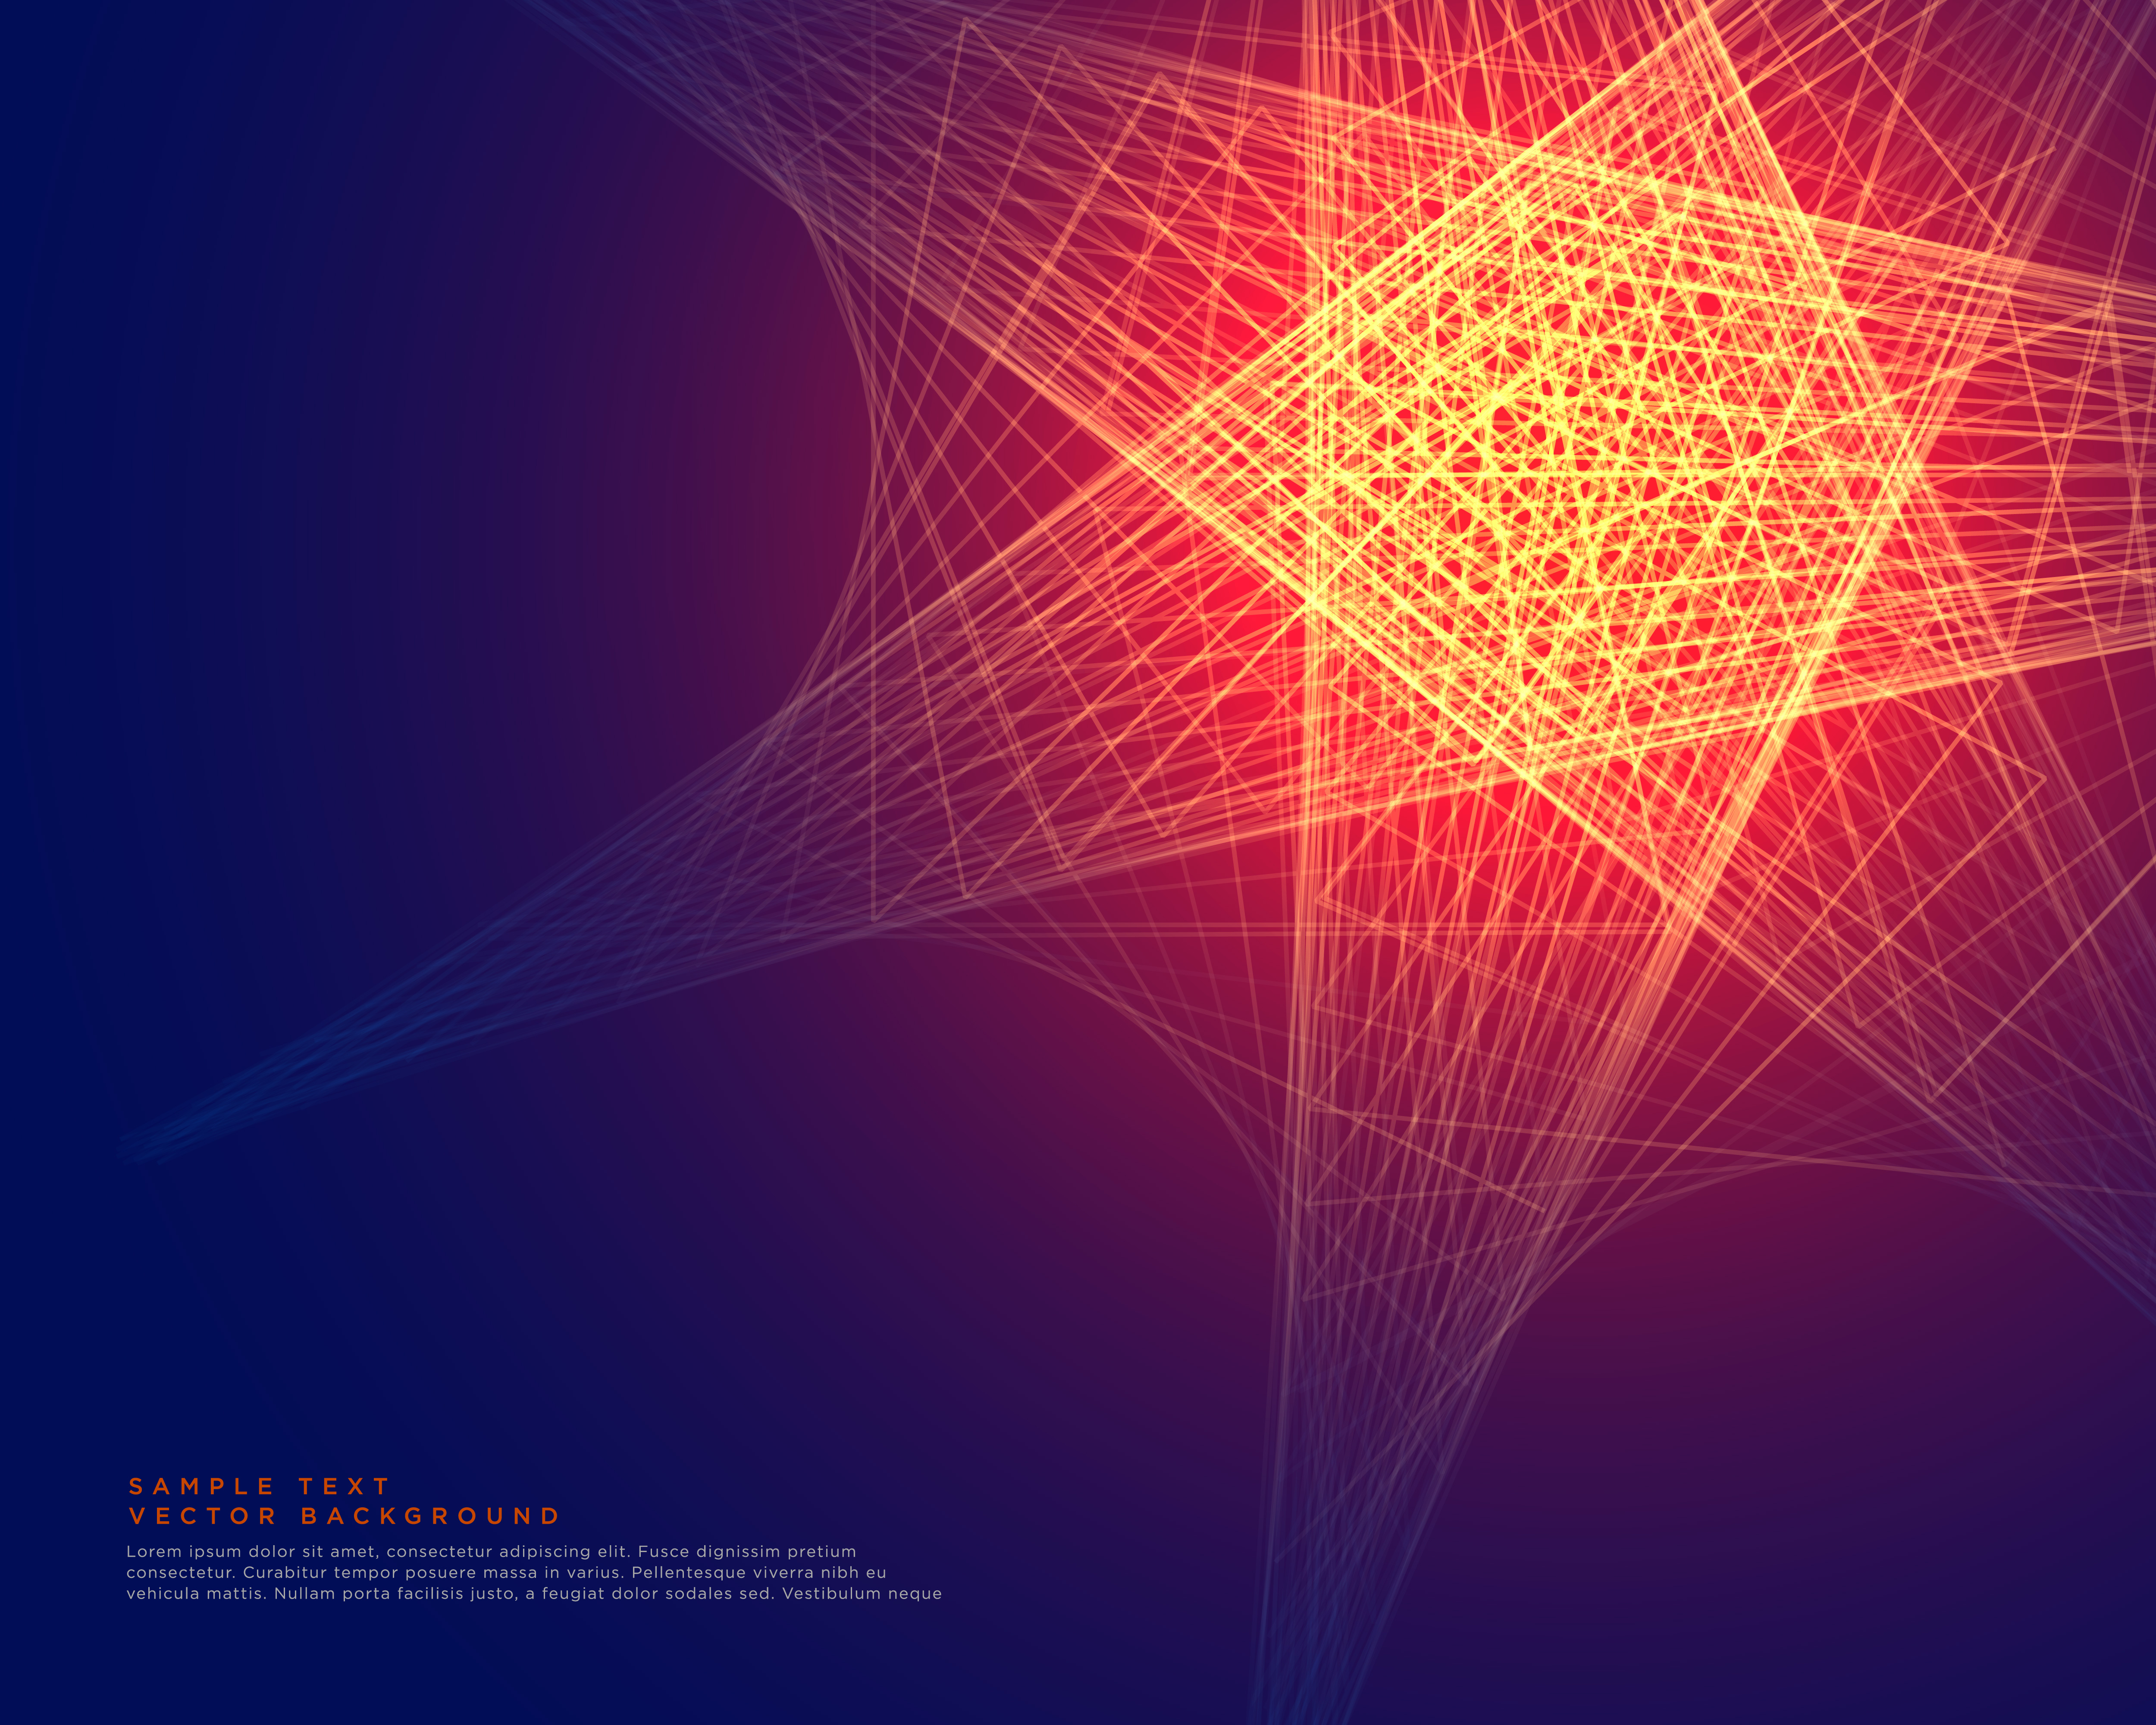 abstract glowing lines background design - Download Free ...